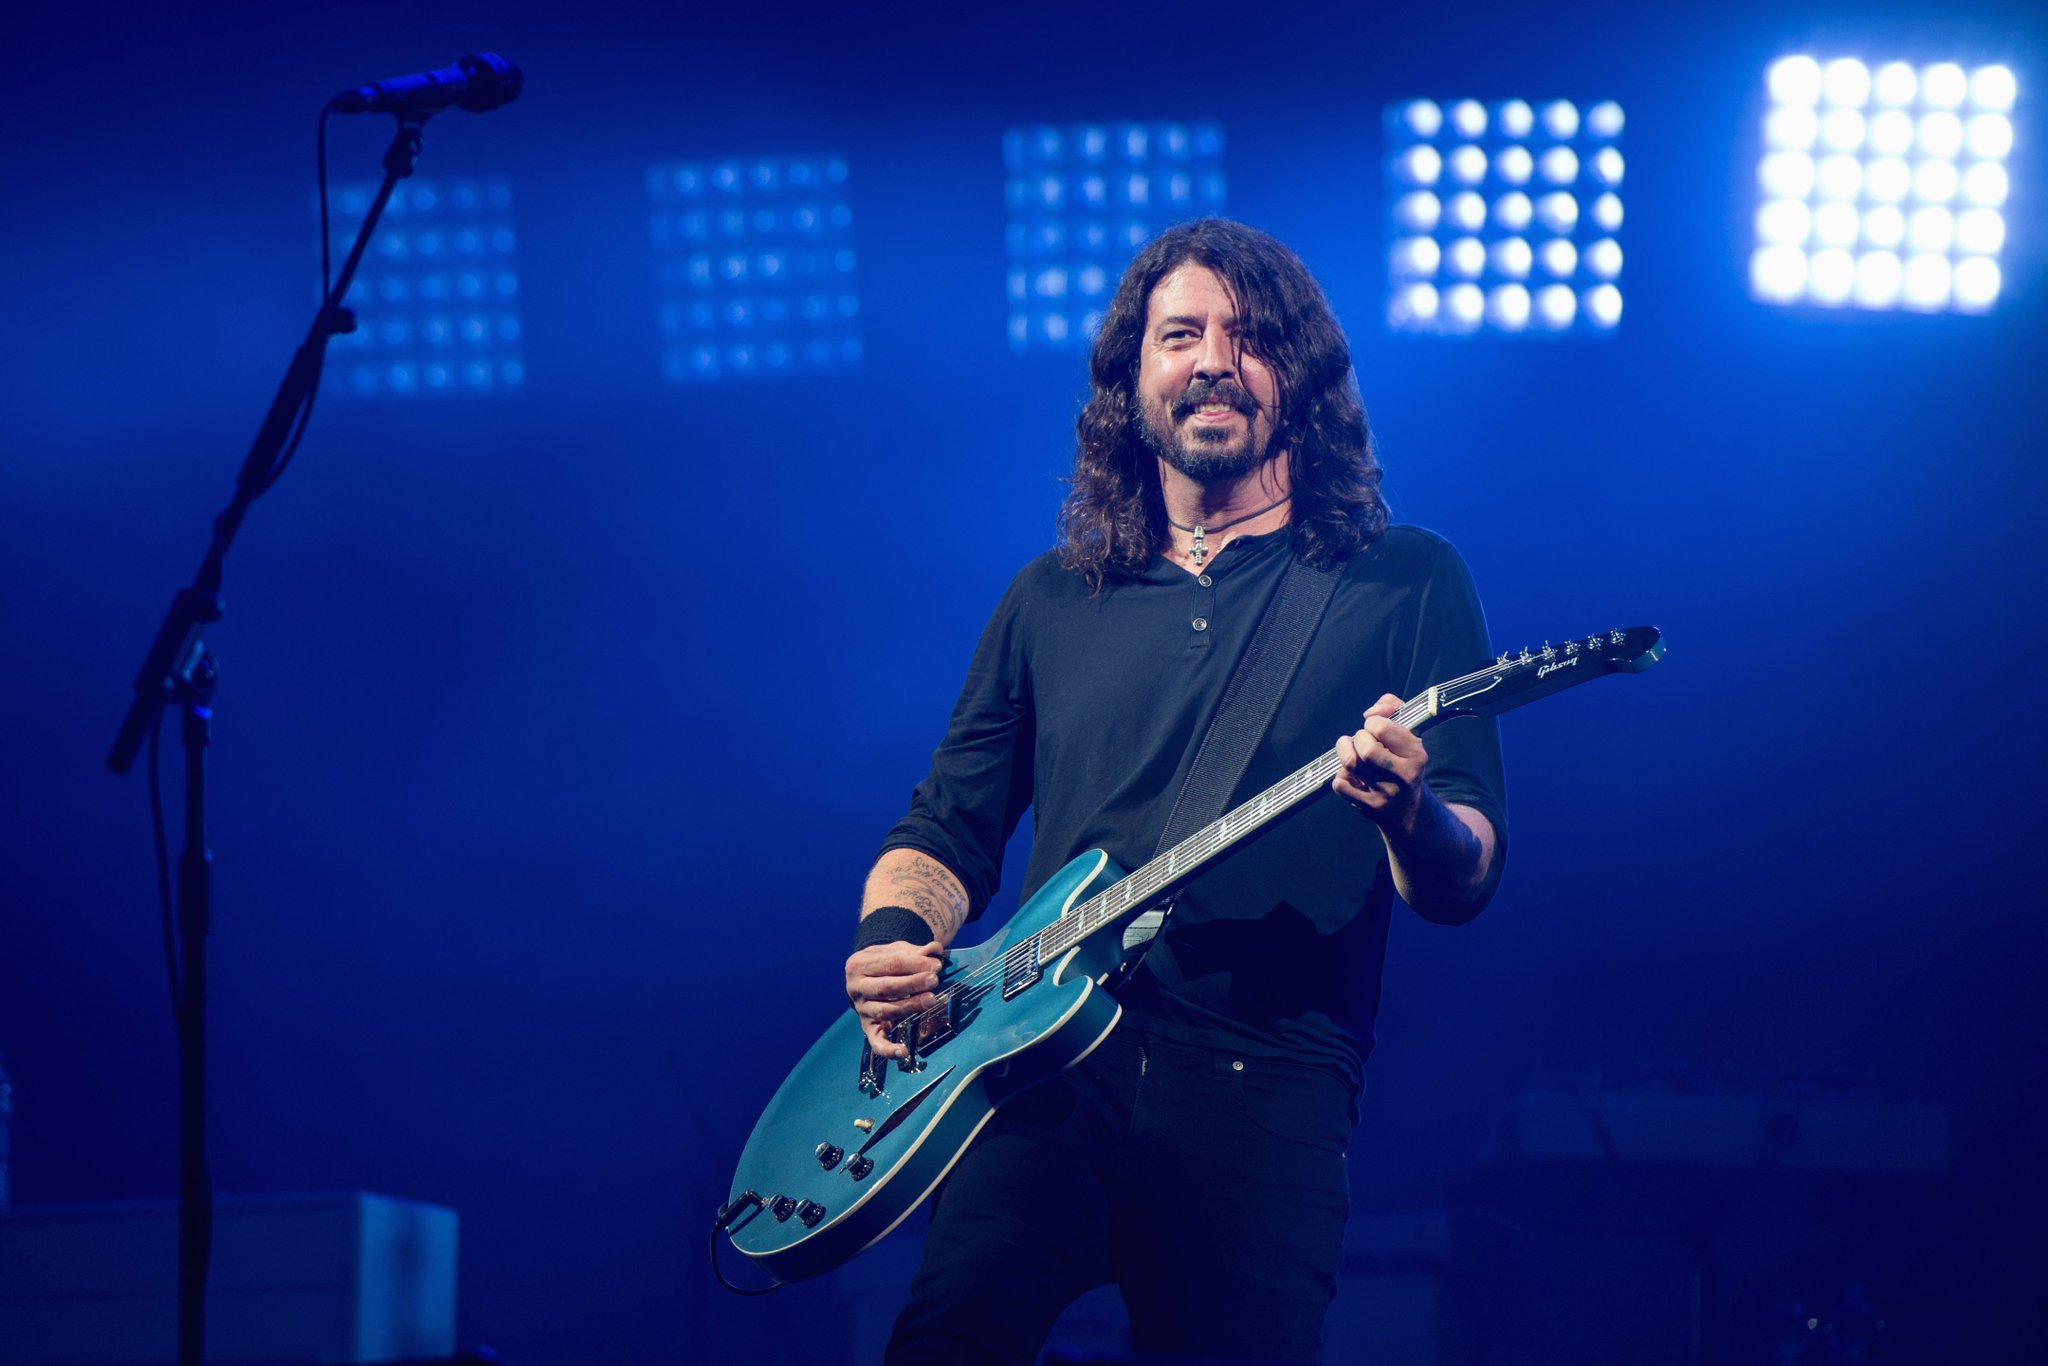 Watch Dave Grohl (@foofighters) and his daughter cover @Adele https://t.co/D4xF9kCtkS https://t.co/YWx6izGH1p